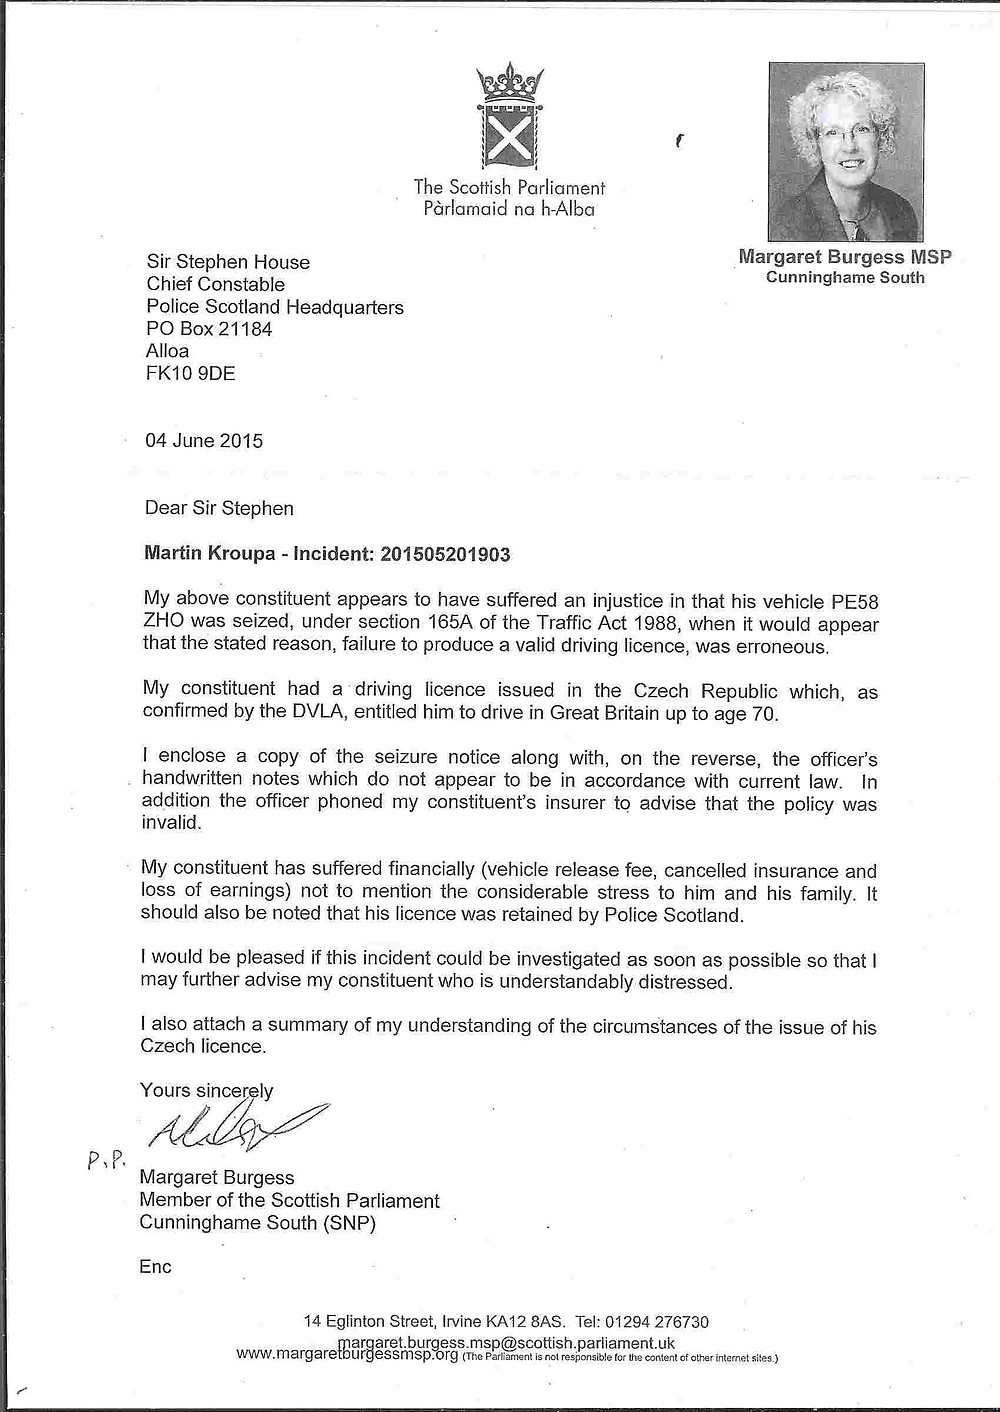 Complaint about police by SNP Margaret Burgess MSP on behalf of Martin Kroupa